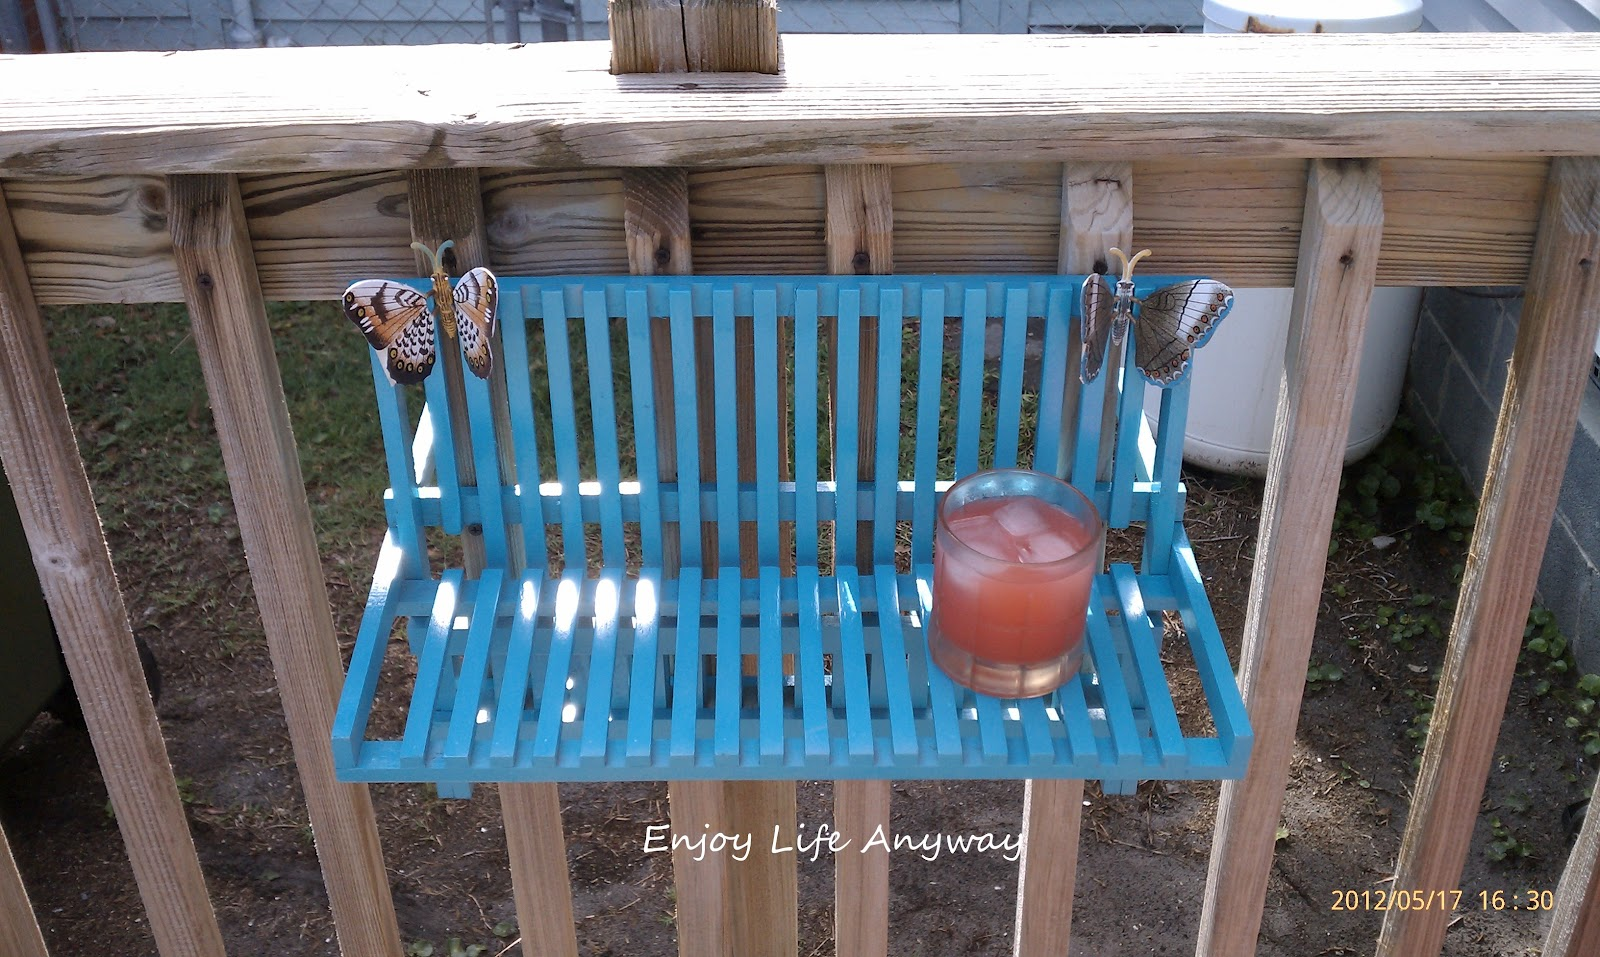 Wood Dish Rack As Small Shelf / Drink Holder.. Full resolution  file, nominally Width 1600 Height 957 pixels, file with #2E769D.